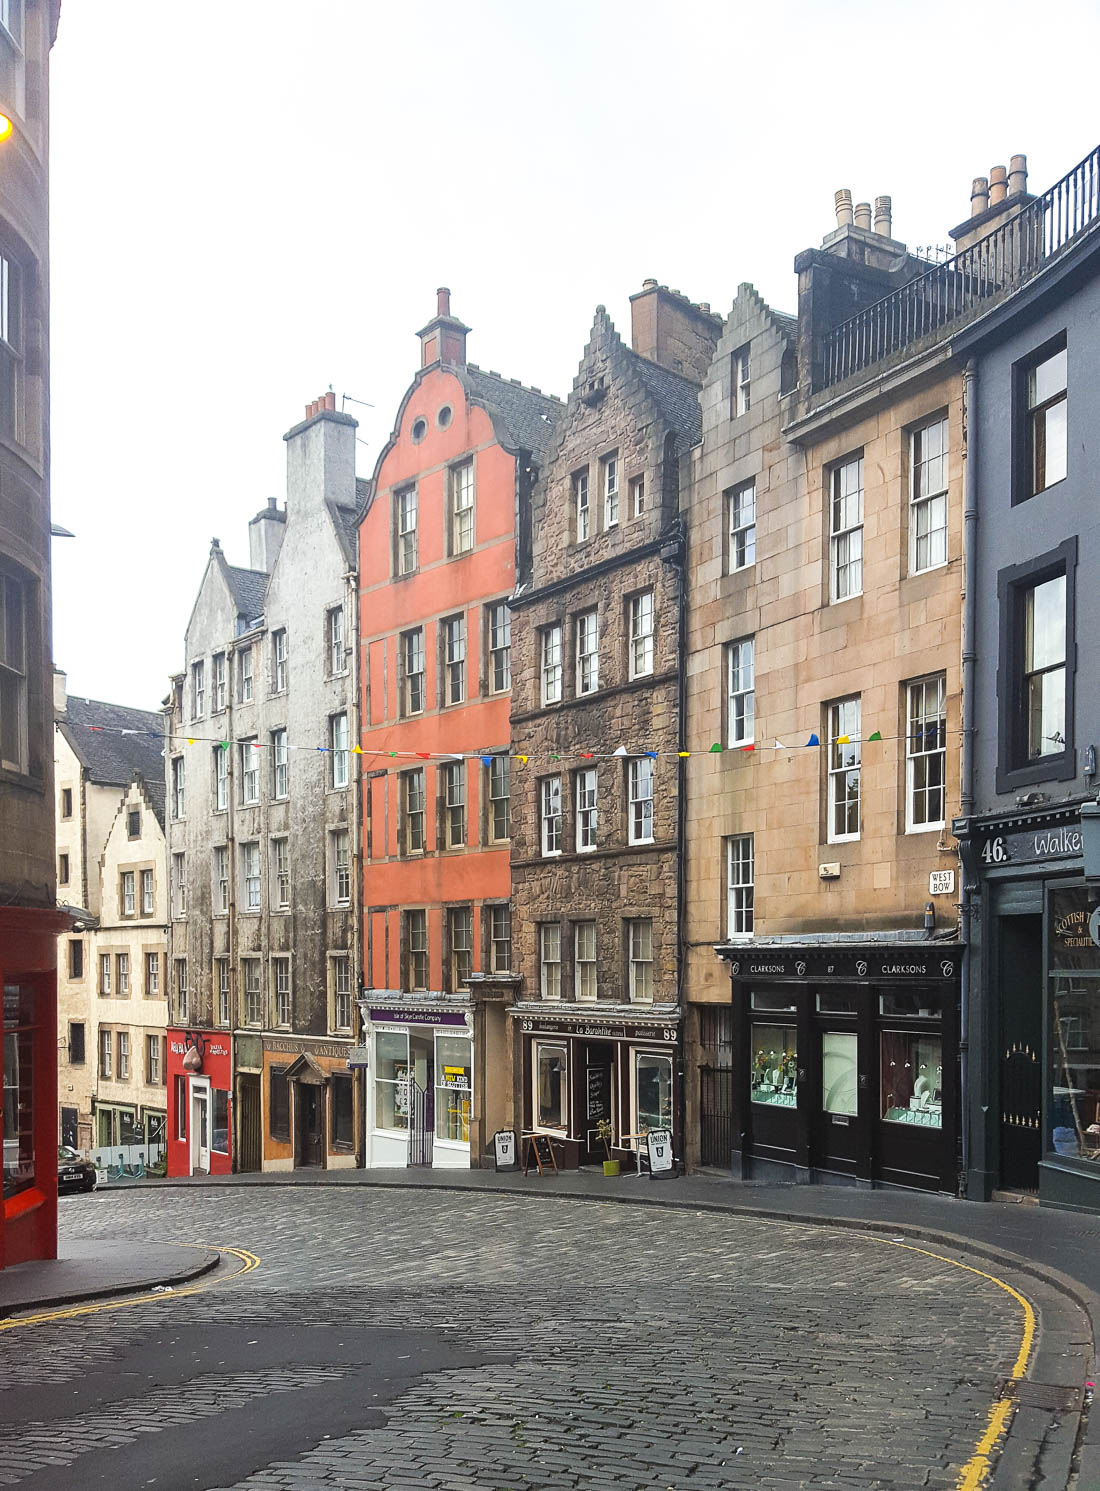 The Radisson Collection Hotel Royal Mile Edinburgh